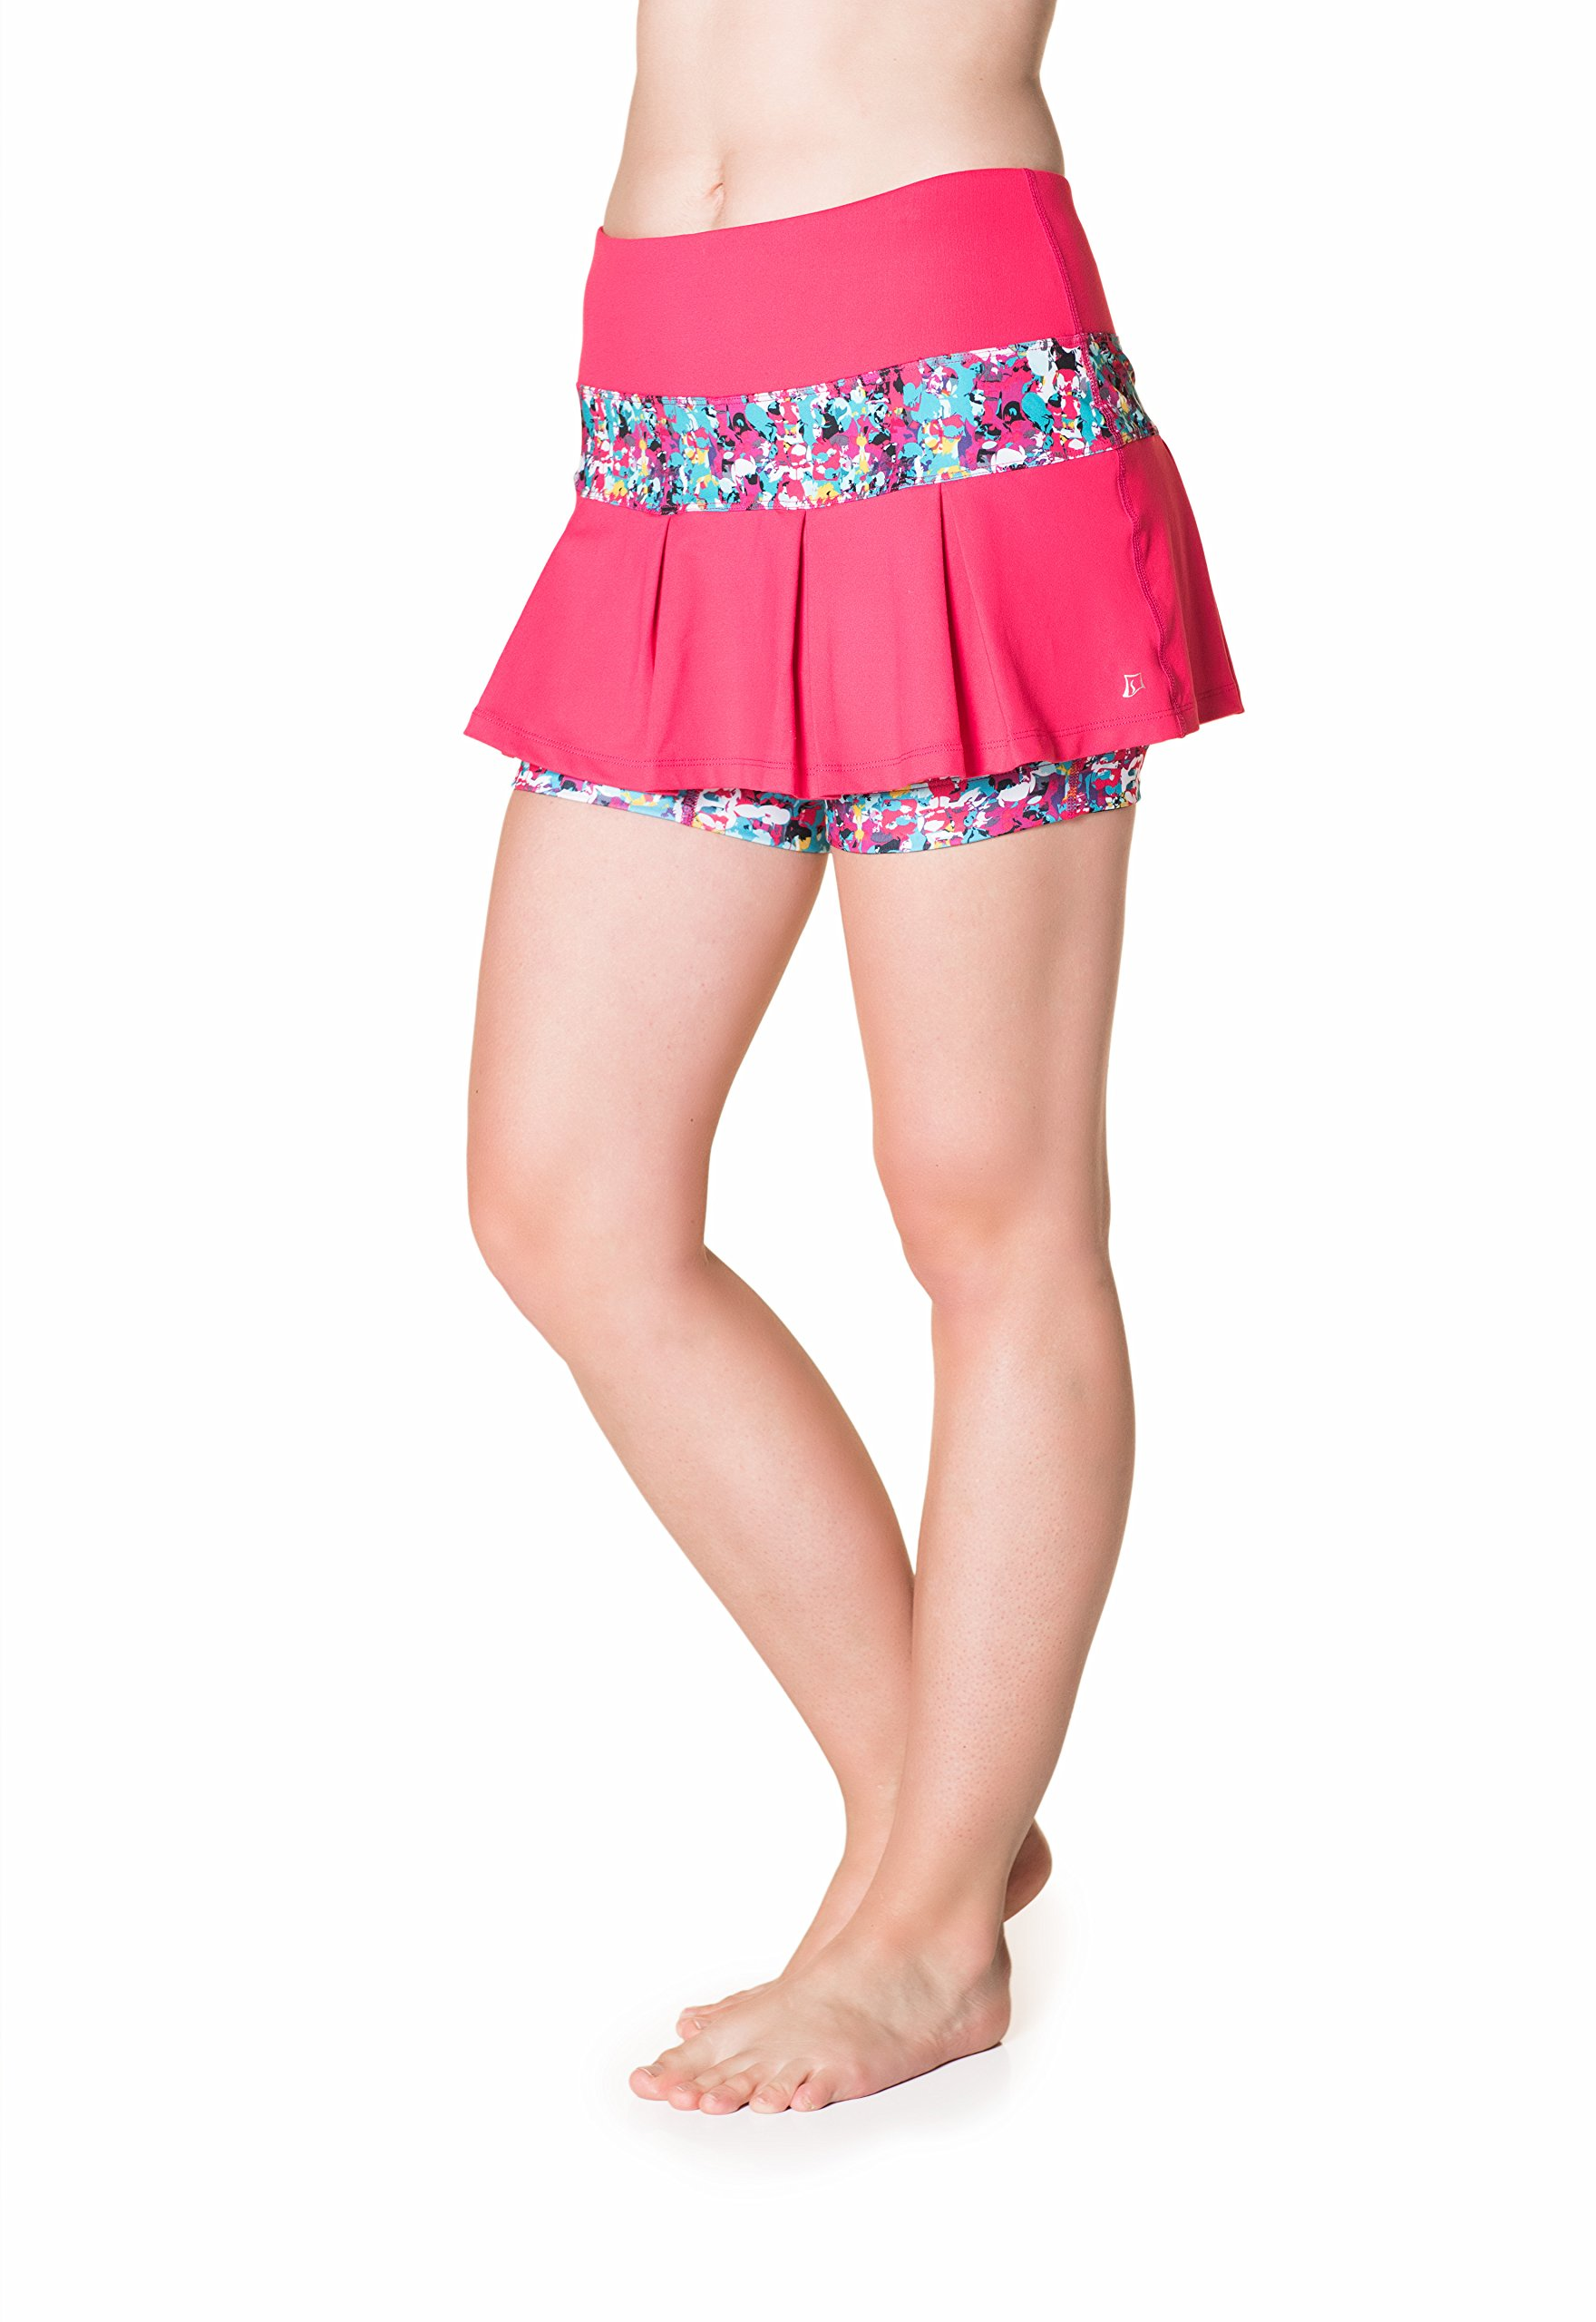 Skirt Sports Women's Lioness Skirt, Small, Cosmo Pink/Holiday Print by Skirt Sports